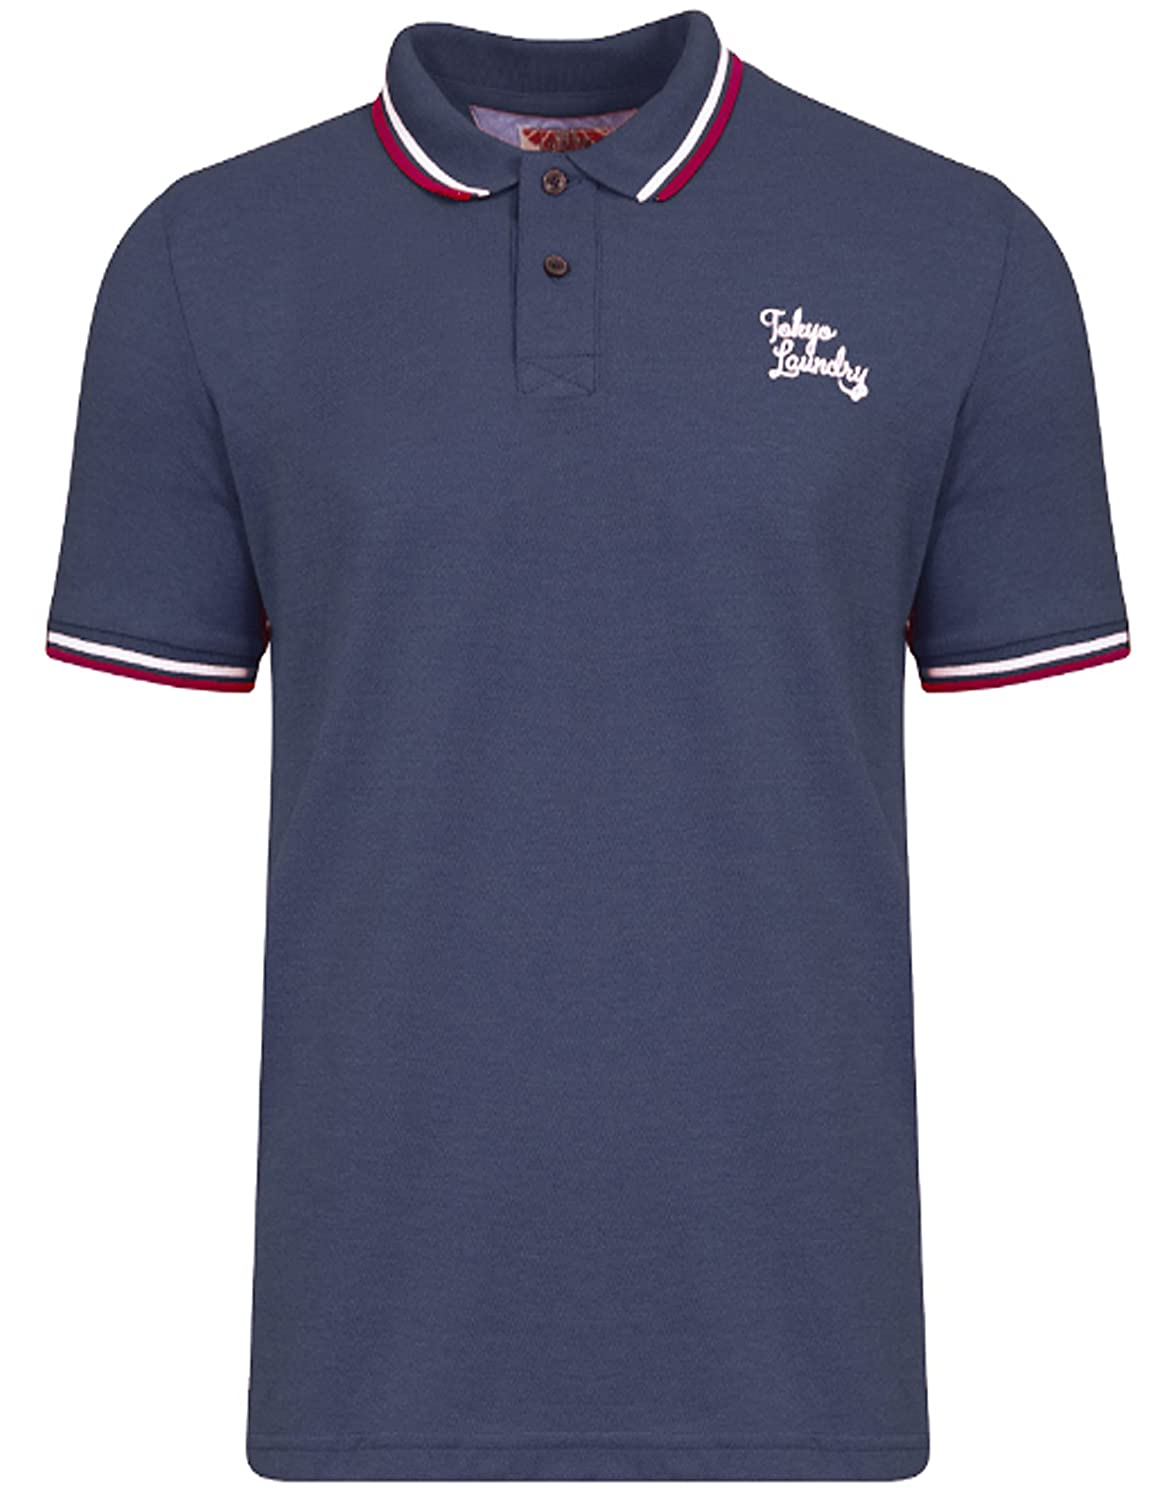 Mens Pique Polo Shirt T-Shirt Goodwin Point Tokyo Laundry Sommer 1X8376:  Amazon.de: Bekleidung